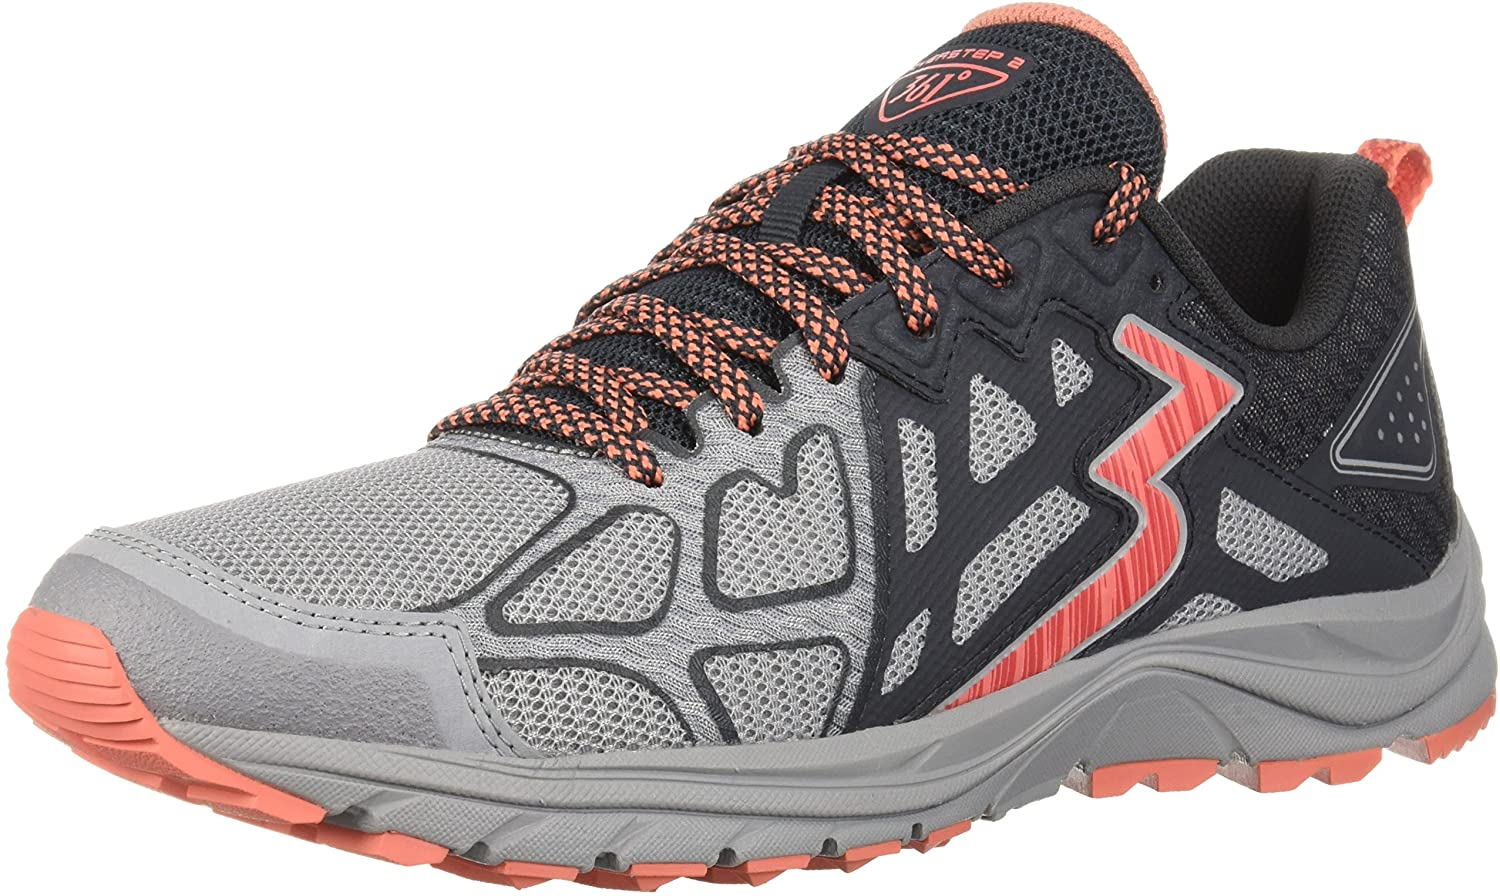 361° Womens 361-overstep 2 Trail Running Shoe